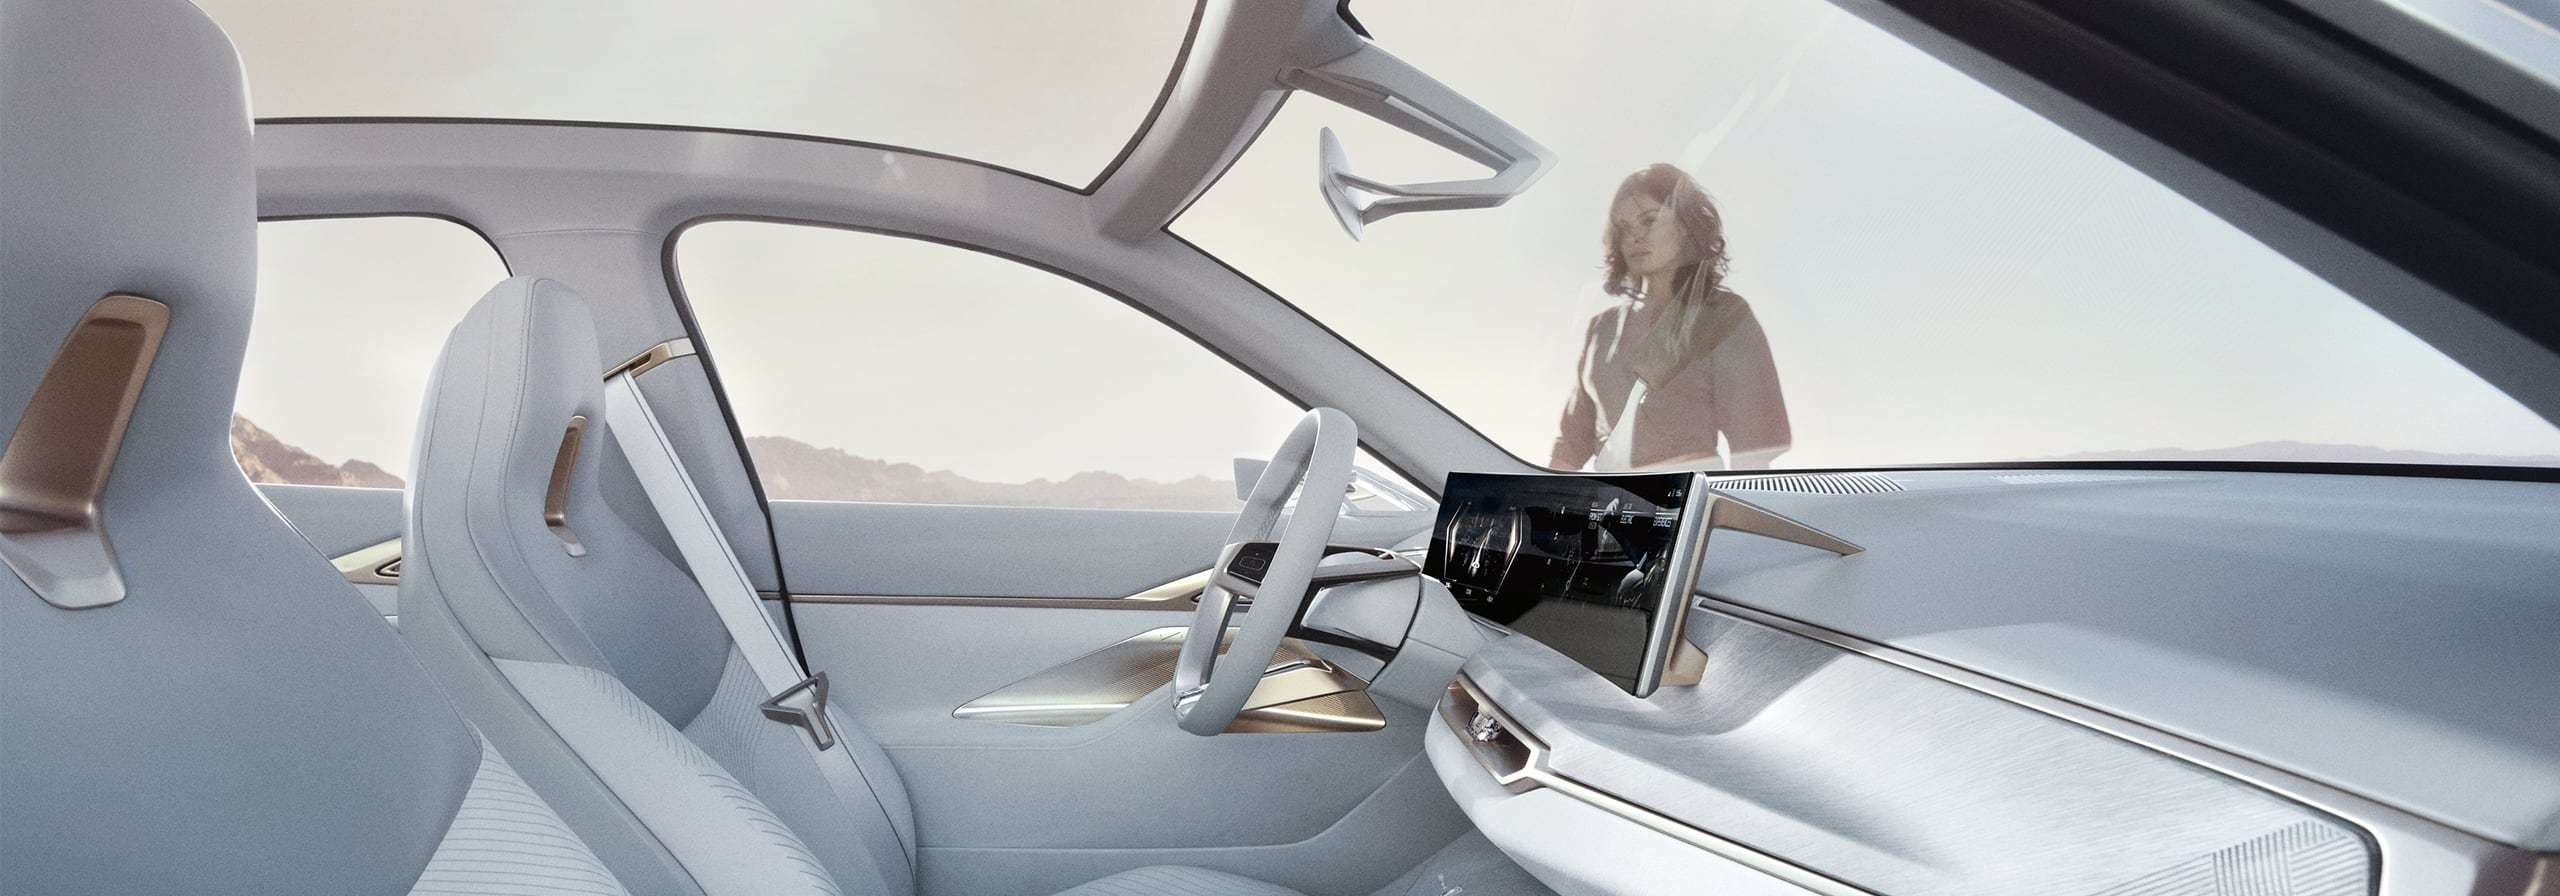 Interior view of the BMW i4, view from the passenger window